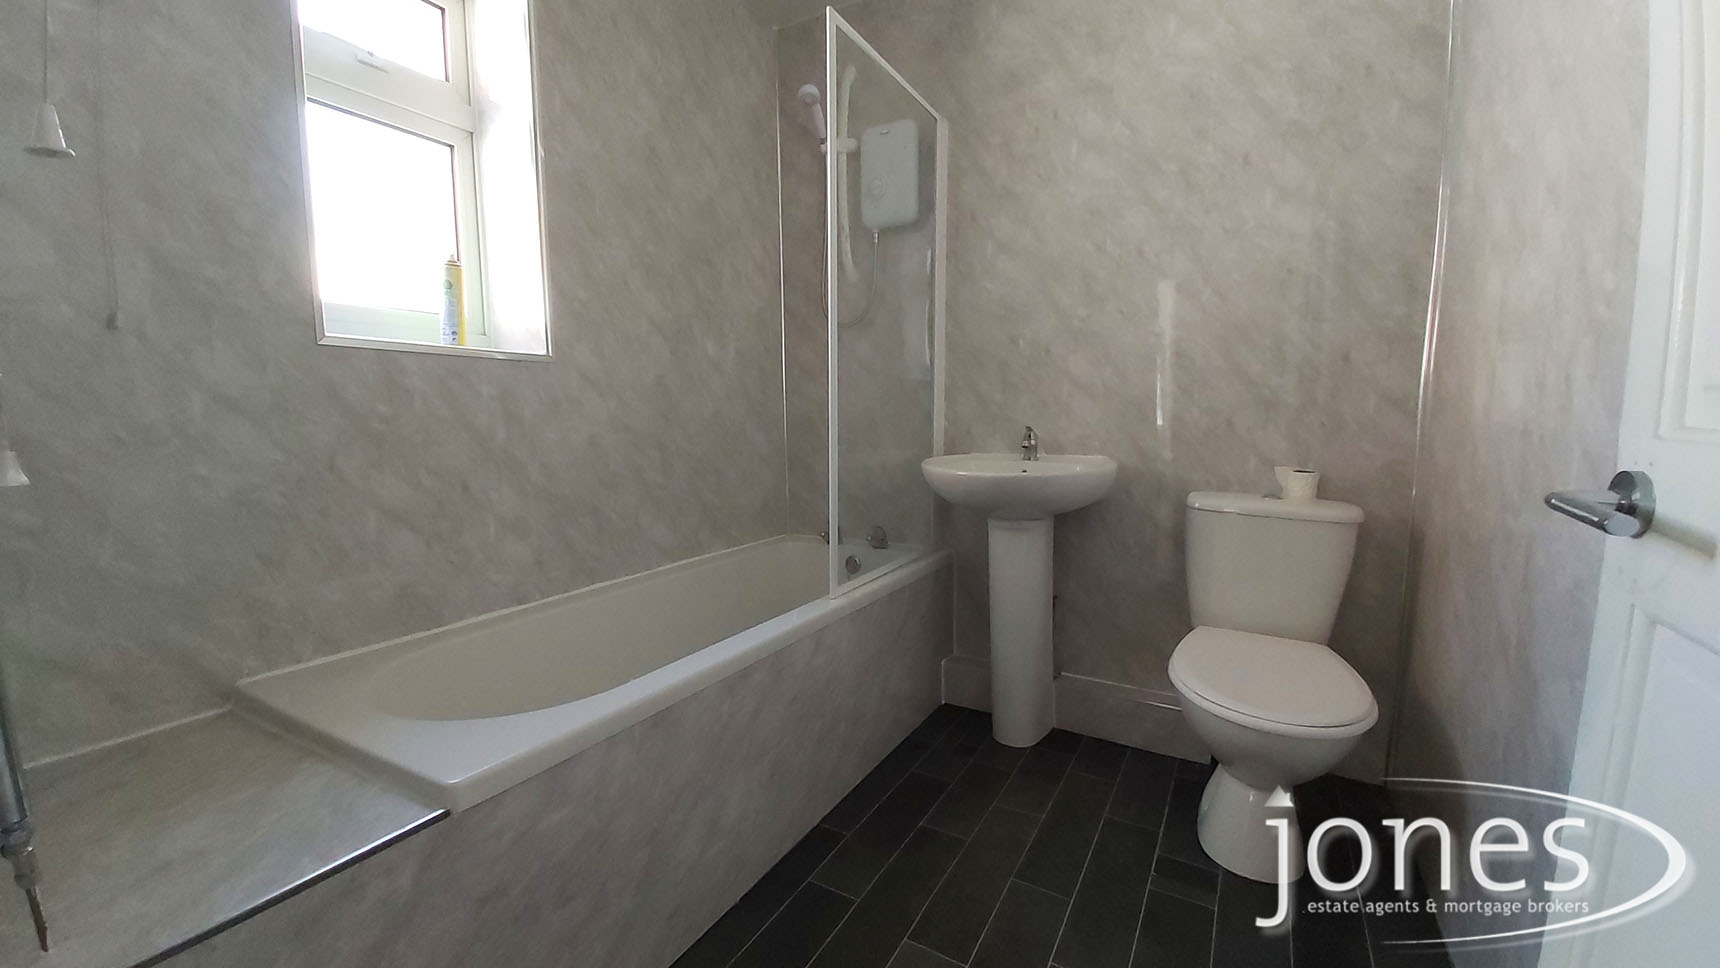 Home for Sale Let - Photo 09 Mansfield Avenue, Thornaby, Stockton on Tees, TS17 7HQ